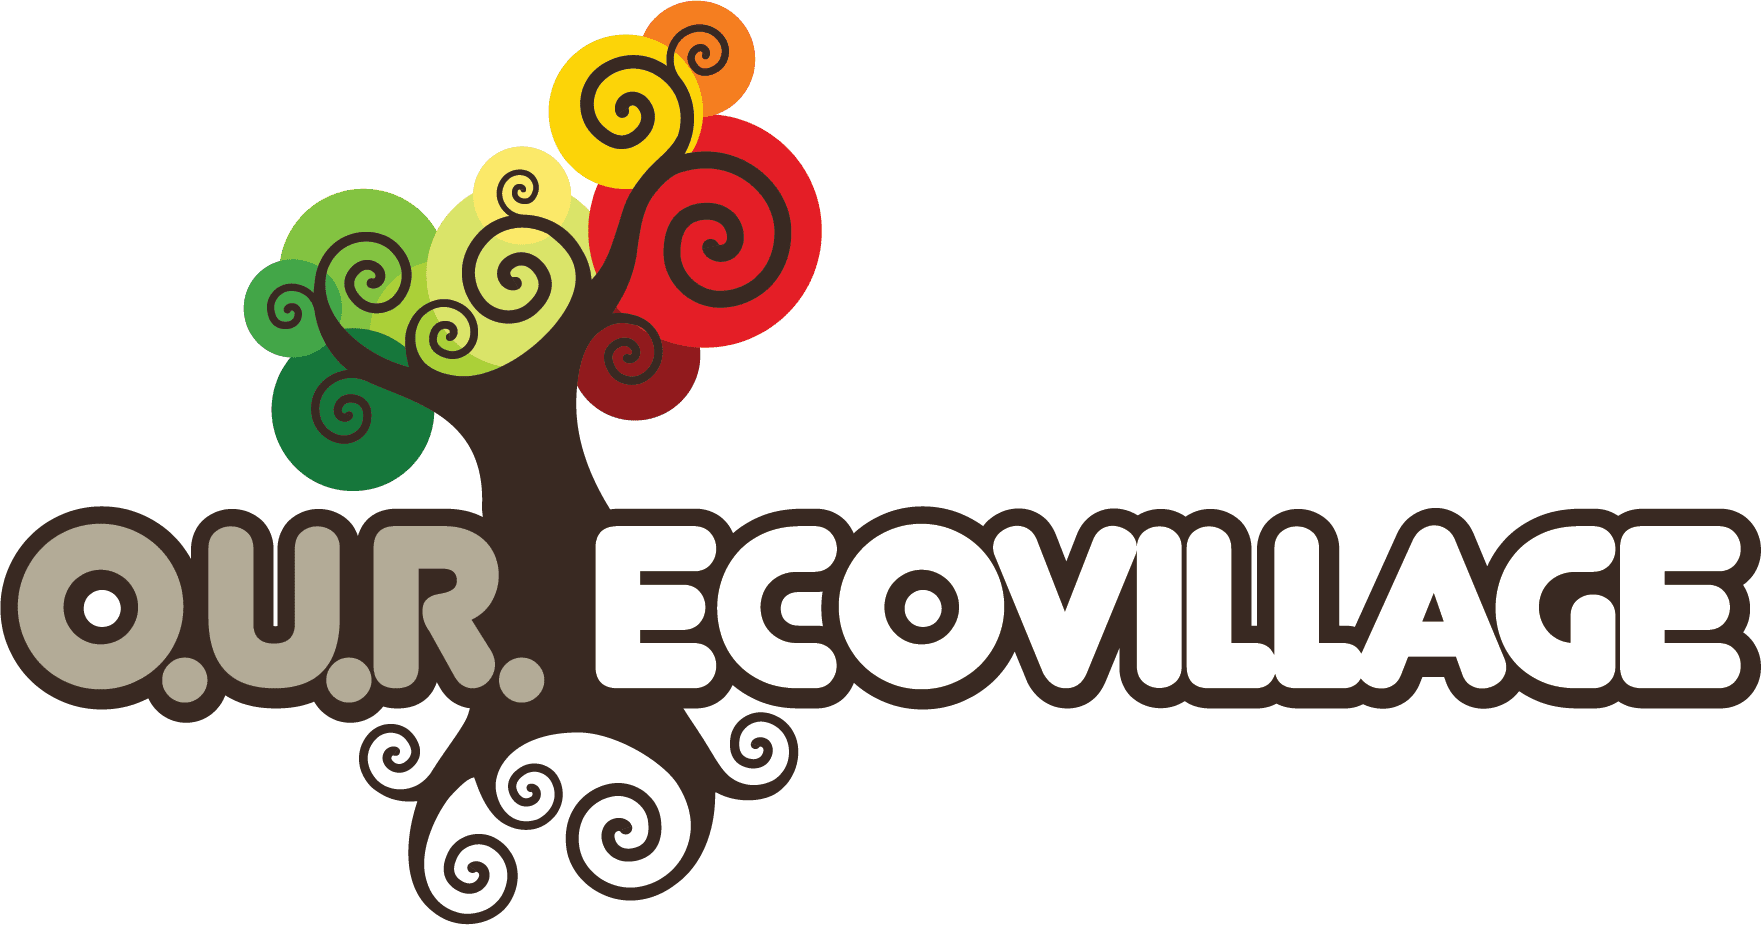 OUR Ecovillage